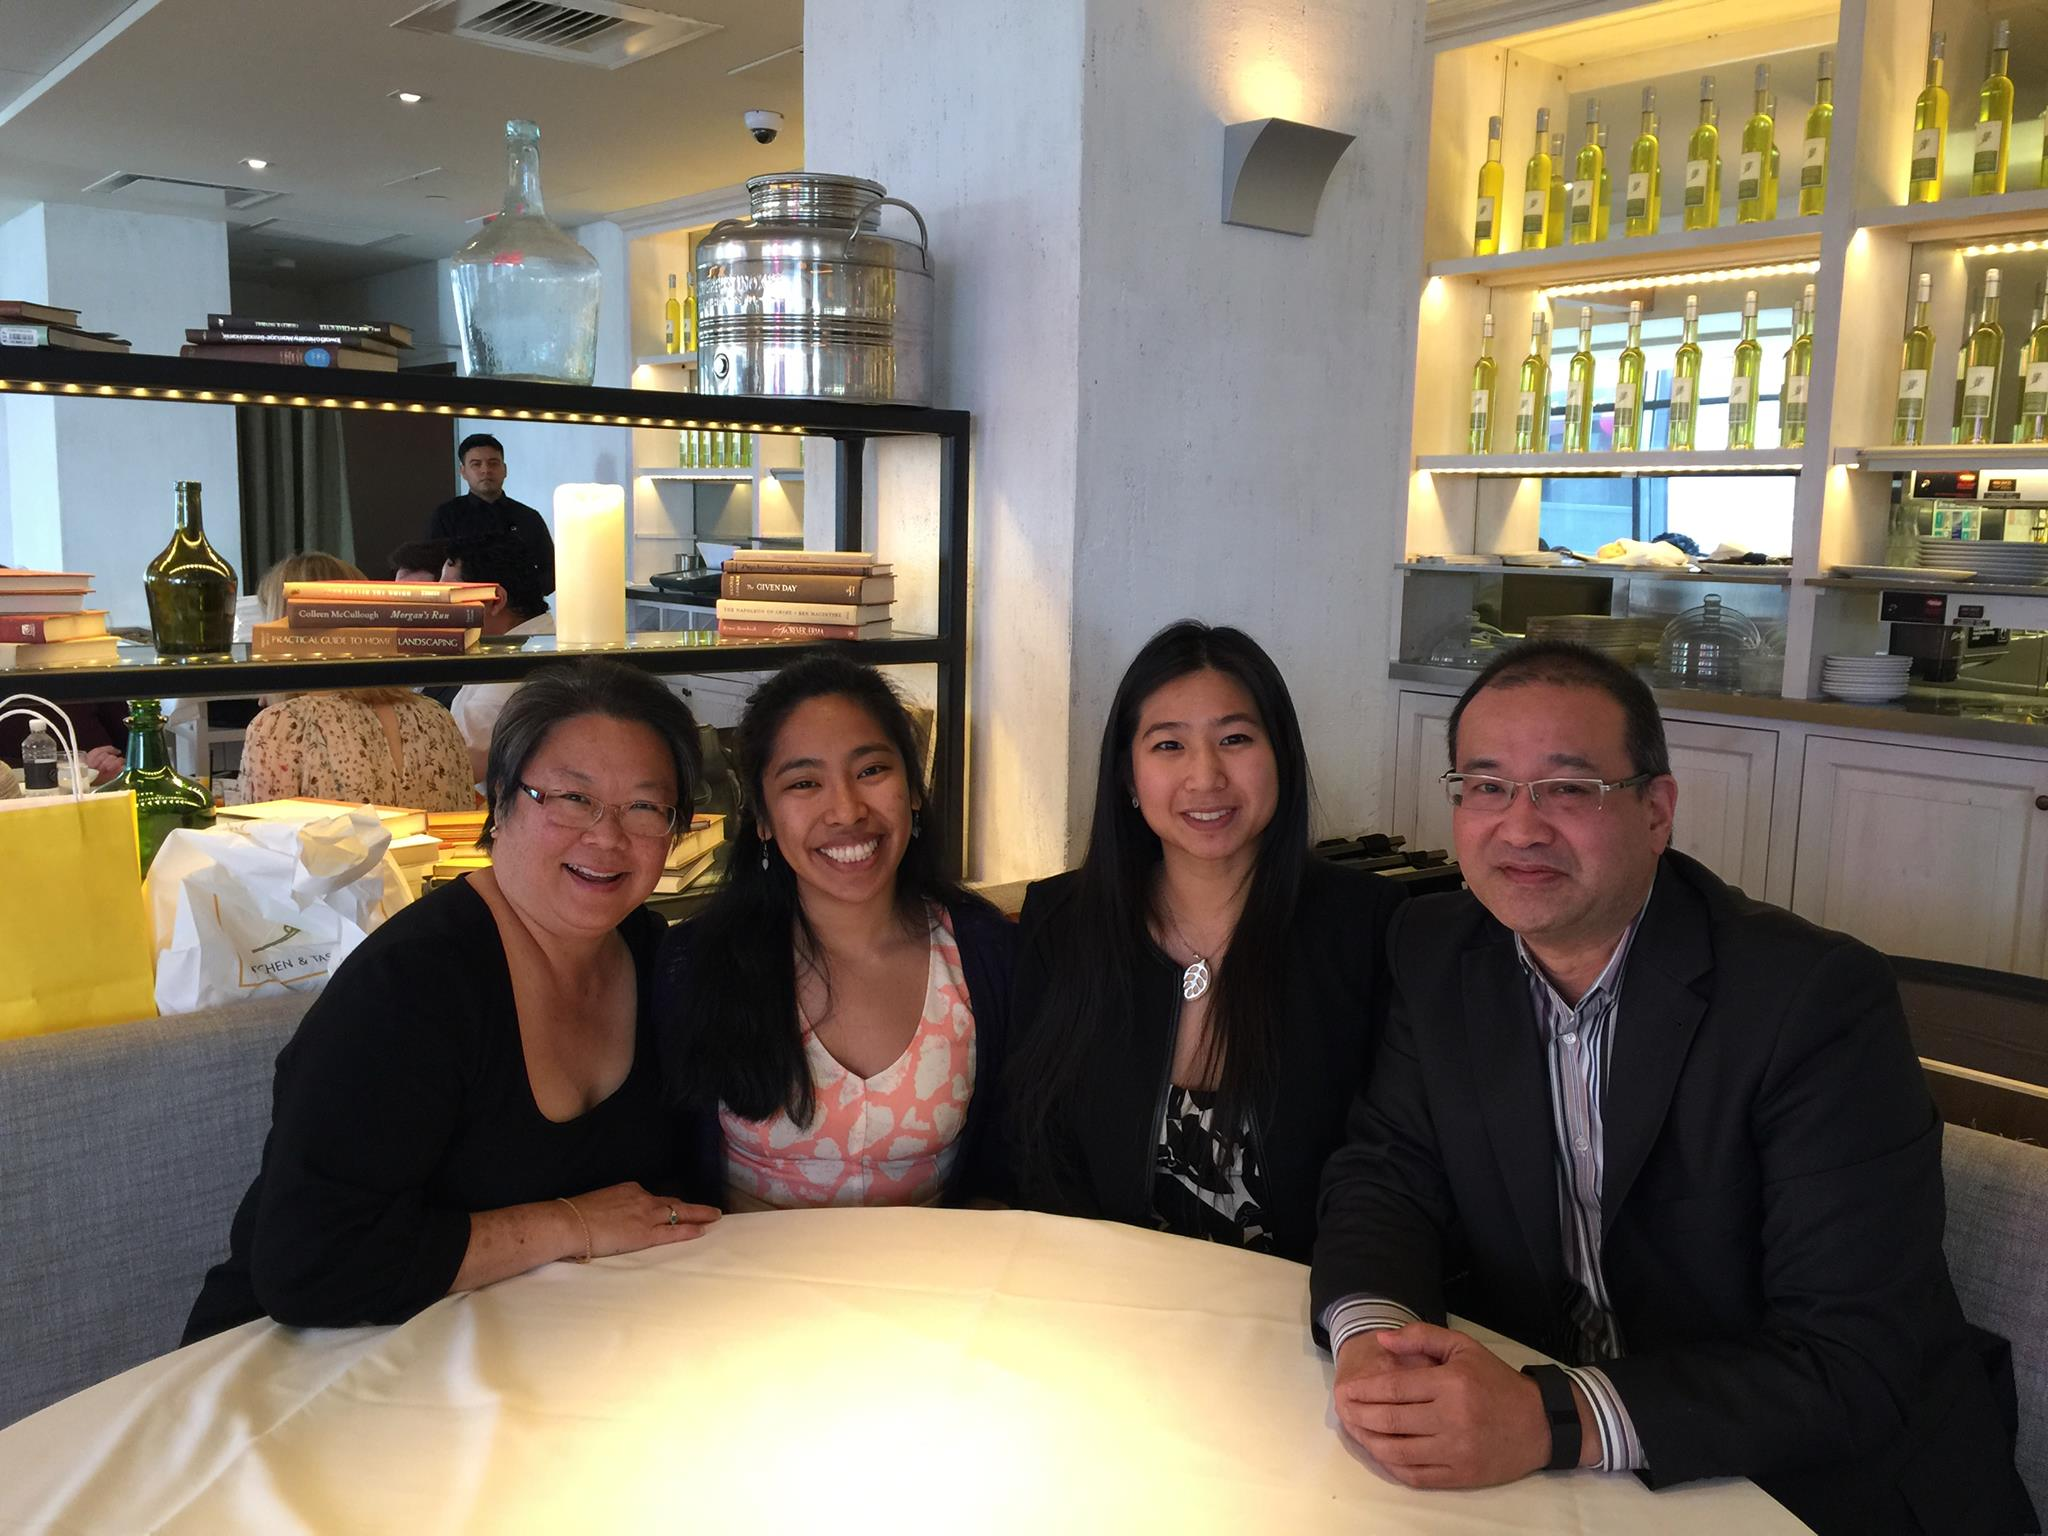 AARP's Multicultural Leadership, Asian American and Pacific Islander (AAPI) Audience Team. (L to R: Daphne Kwok, Ryann Tanap, June Kao, and Ron Mori)